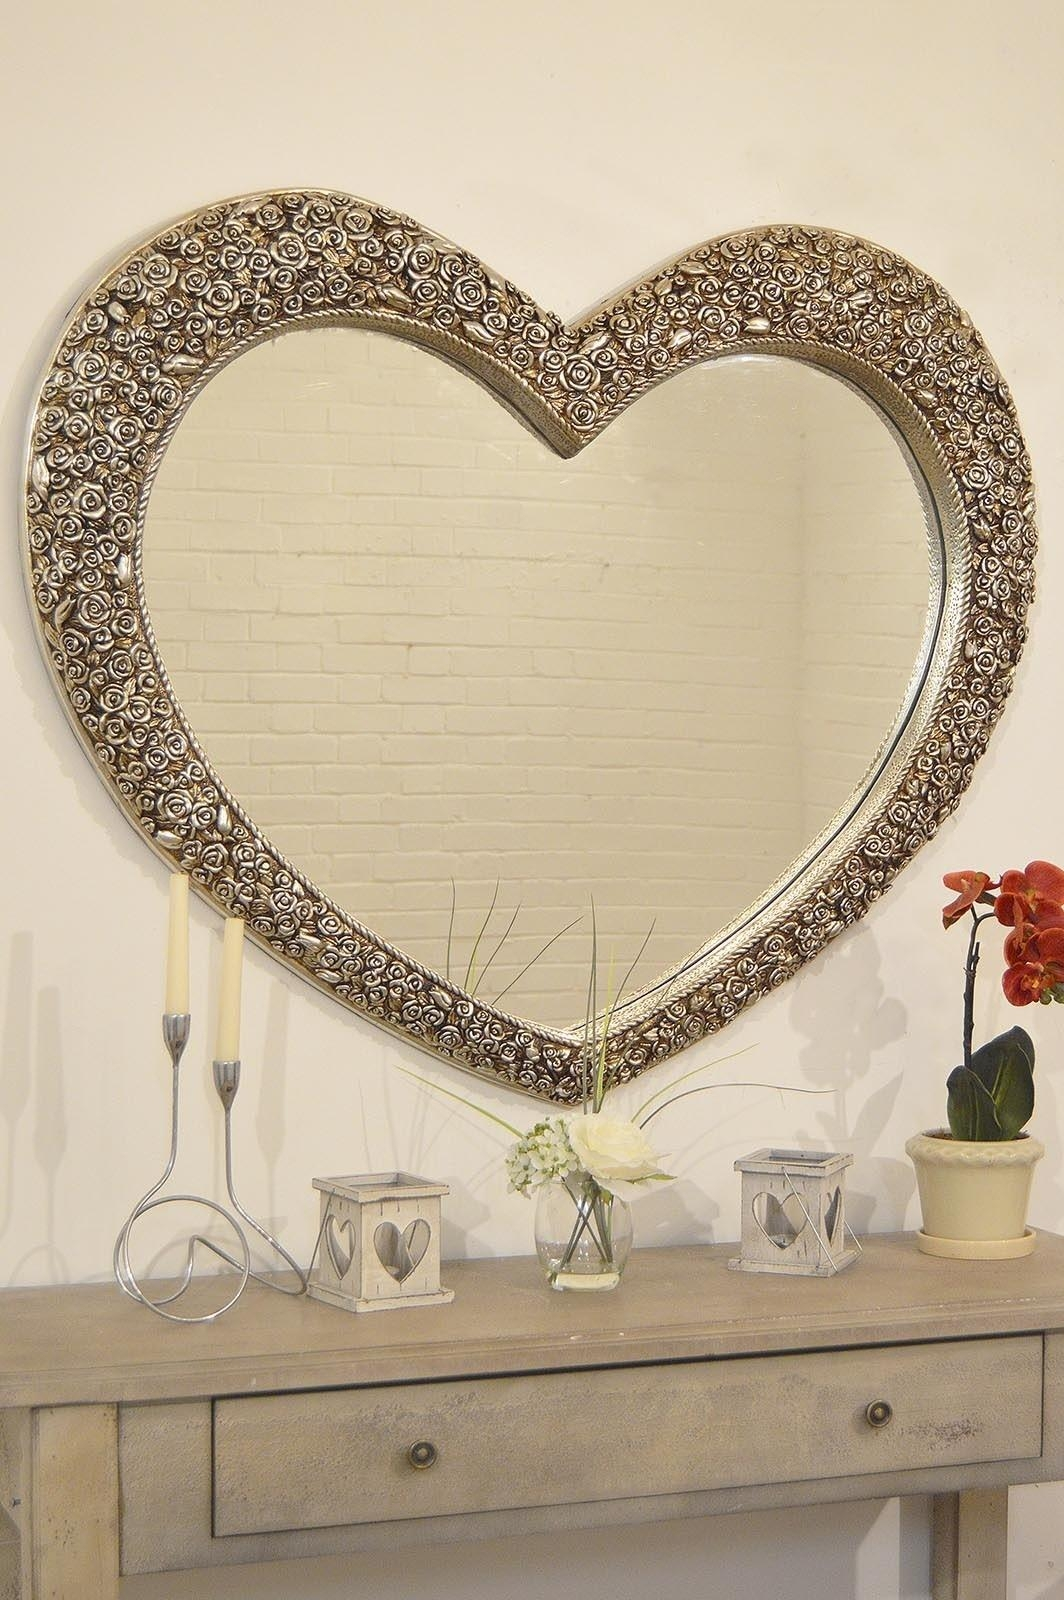 Antique Vintage Wall Mirrors : Doherty House – A Beautiful Of With Antique Mirrors For Sale Vintage Mirrors (Image 4 of 20)